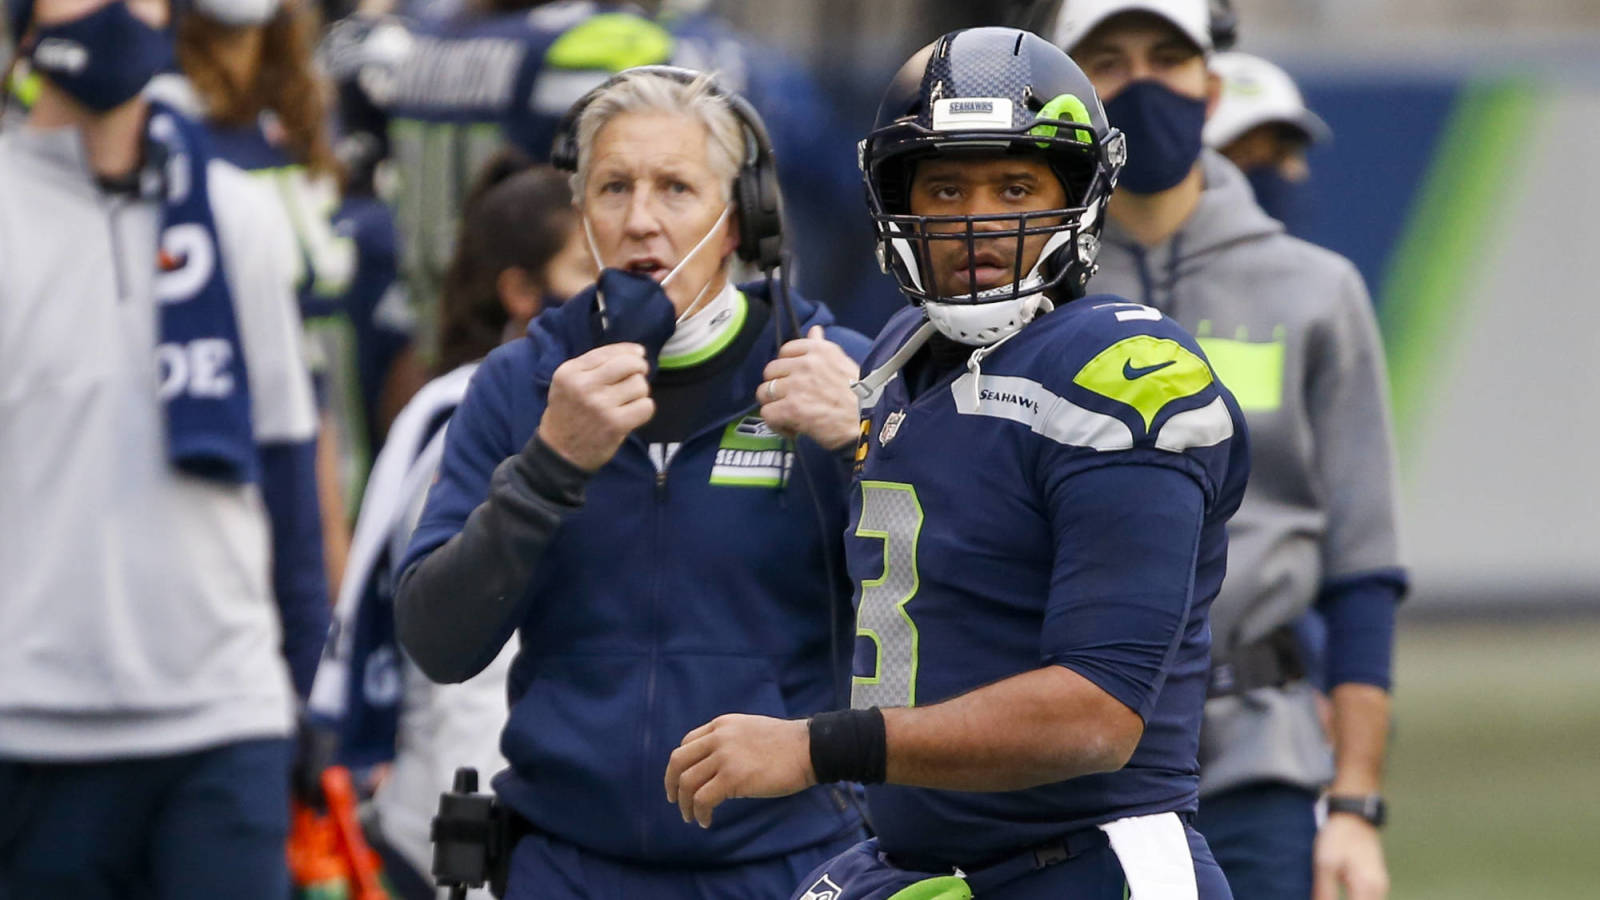 Report: things between Wilson and Seahawks could get 'very ugly'